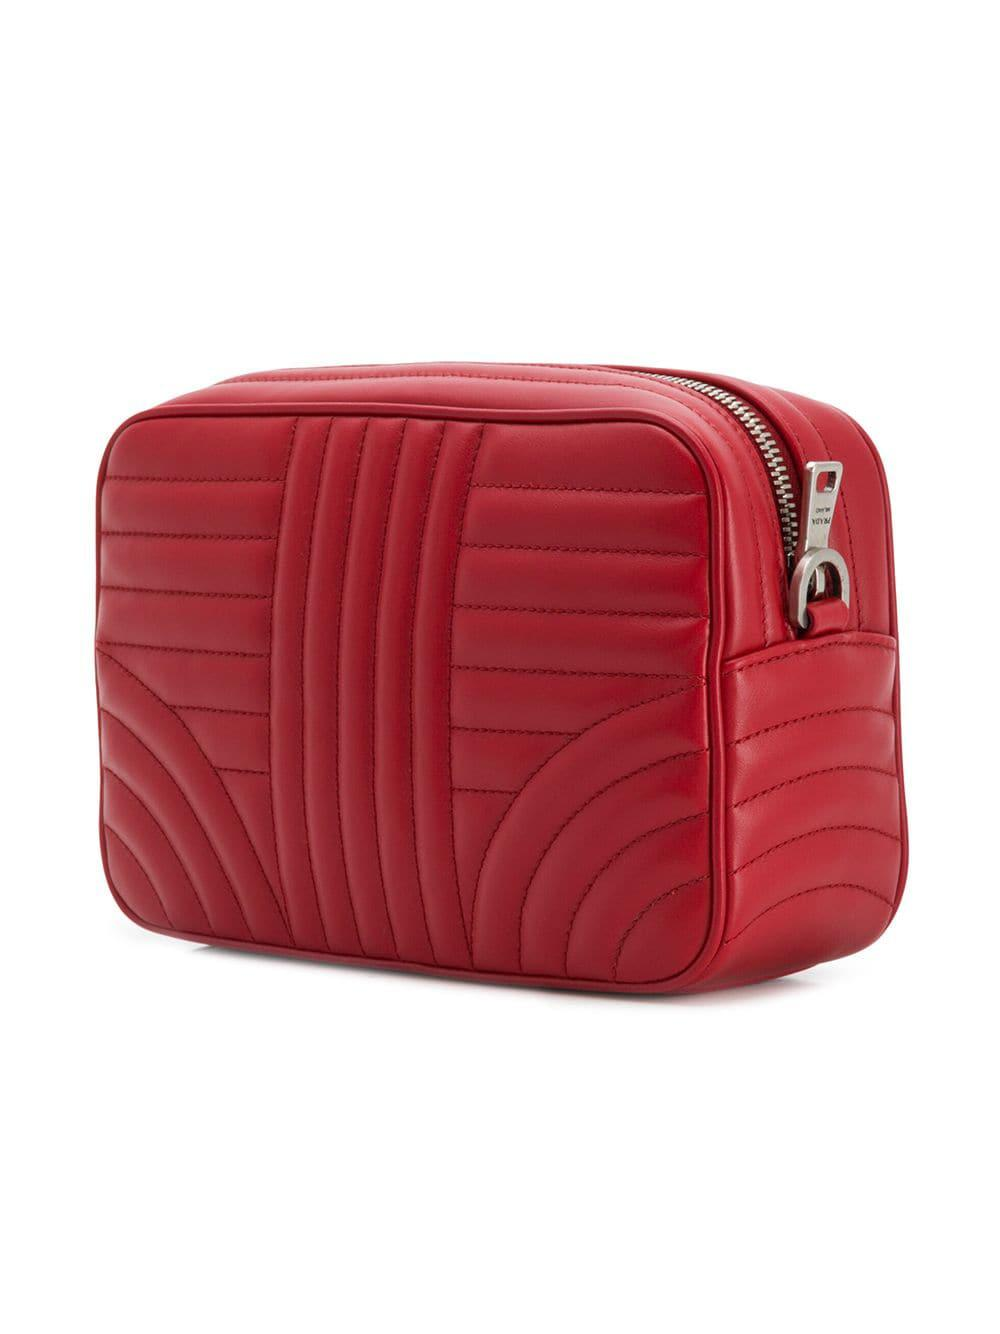 8e77901e3c94 Prada - Red Quilted-effect Shoulder Bag - Lyst. View fullscreen